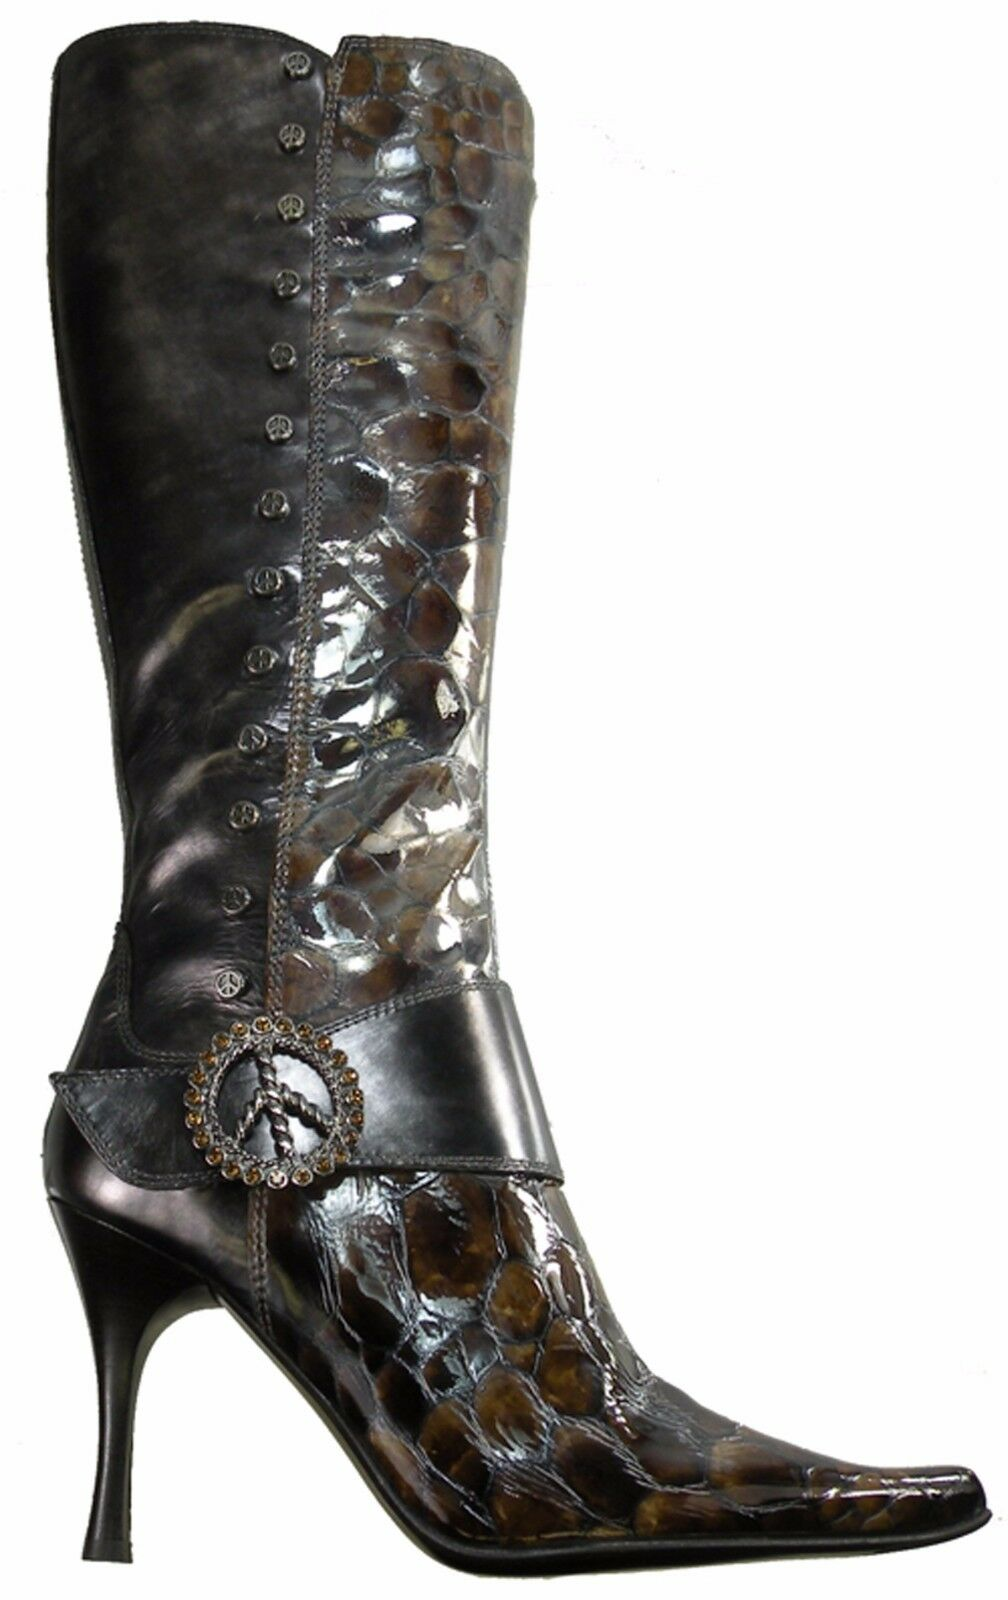 New  525. Donald J Pliner VIDA - 2974 Donna Boot size   6 M Tan / Lead. Italy